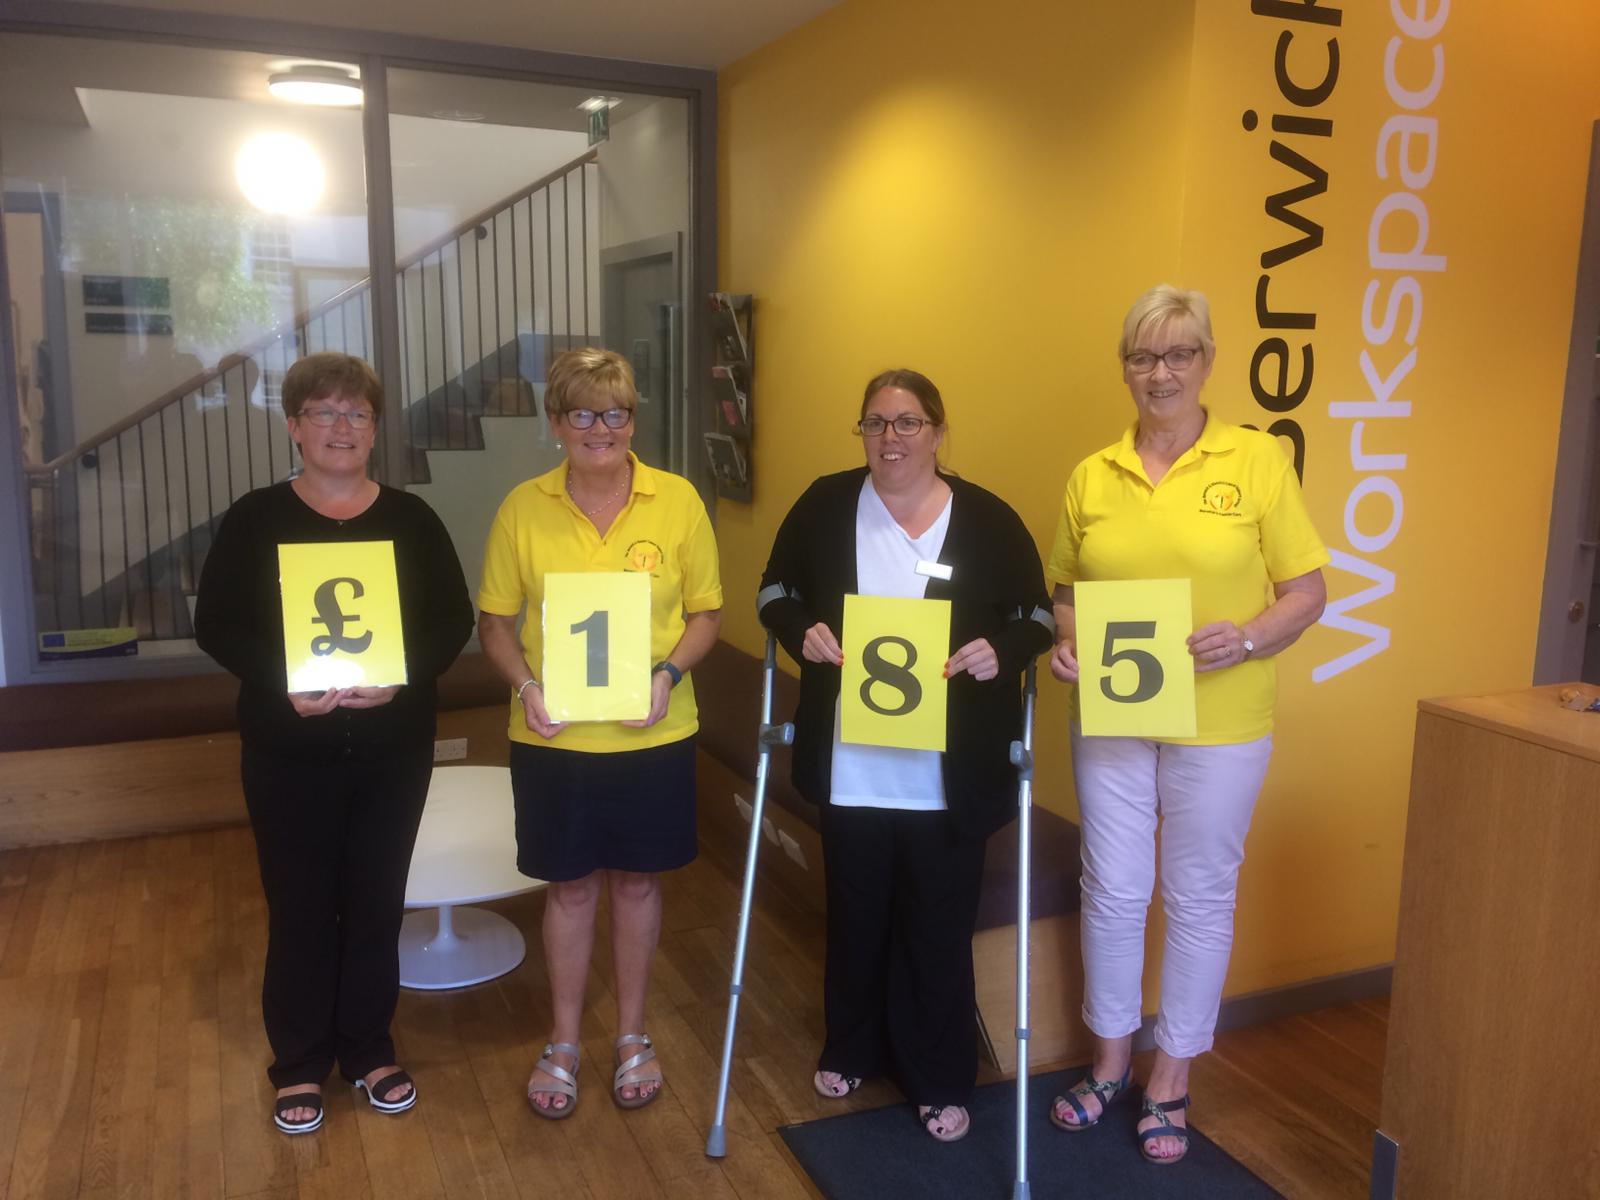 Berwick Workspace Raises Money for Berwick Cancer Cars